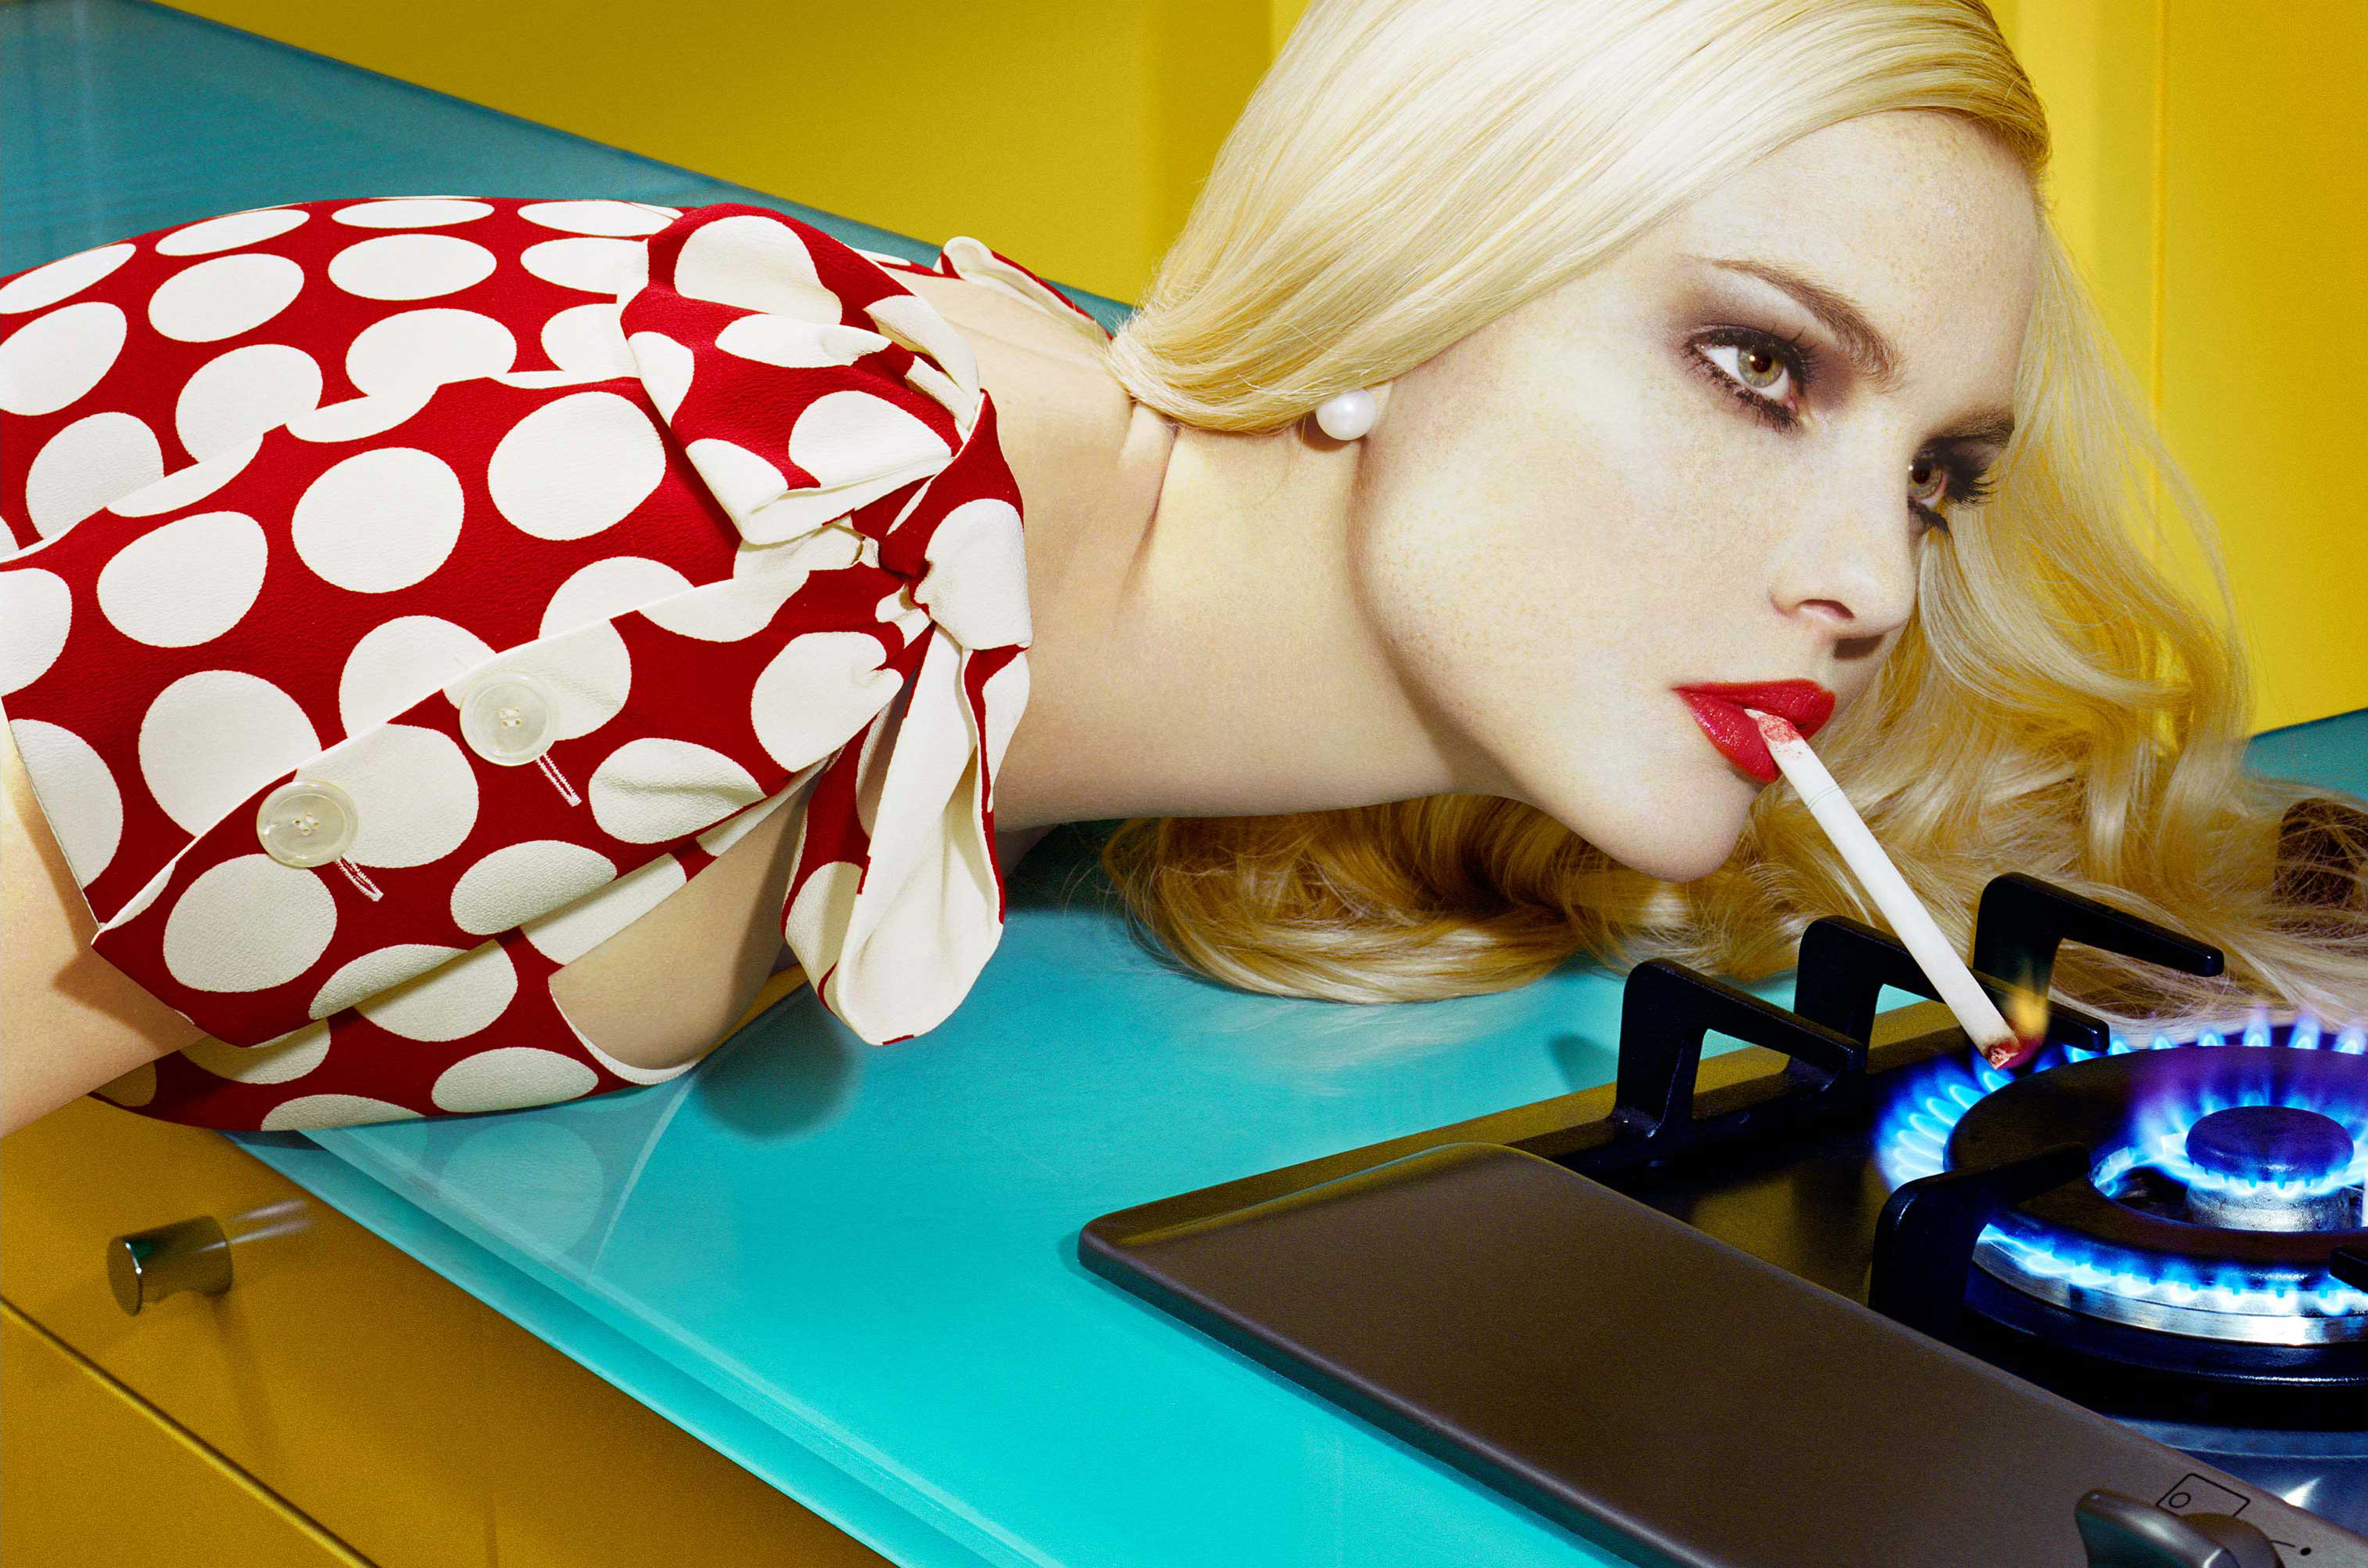 lustnation_milesaldridge_8